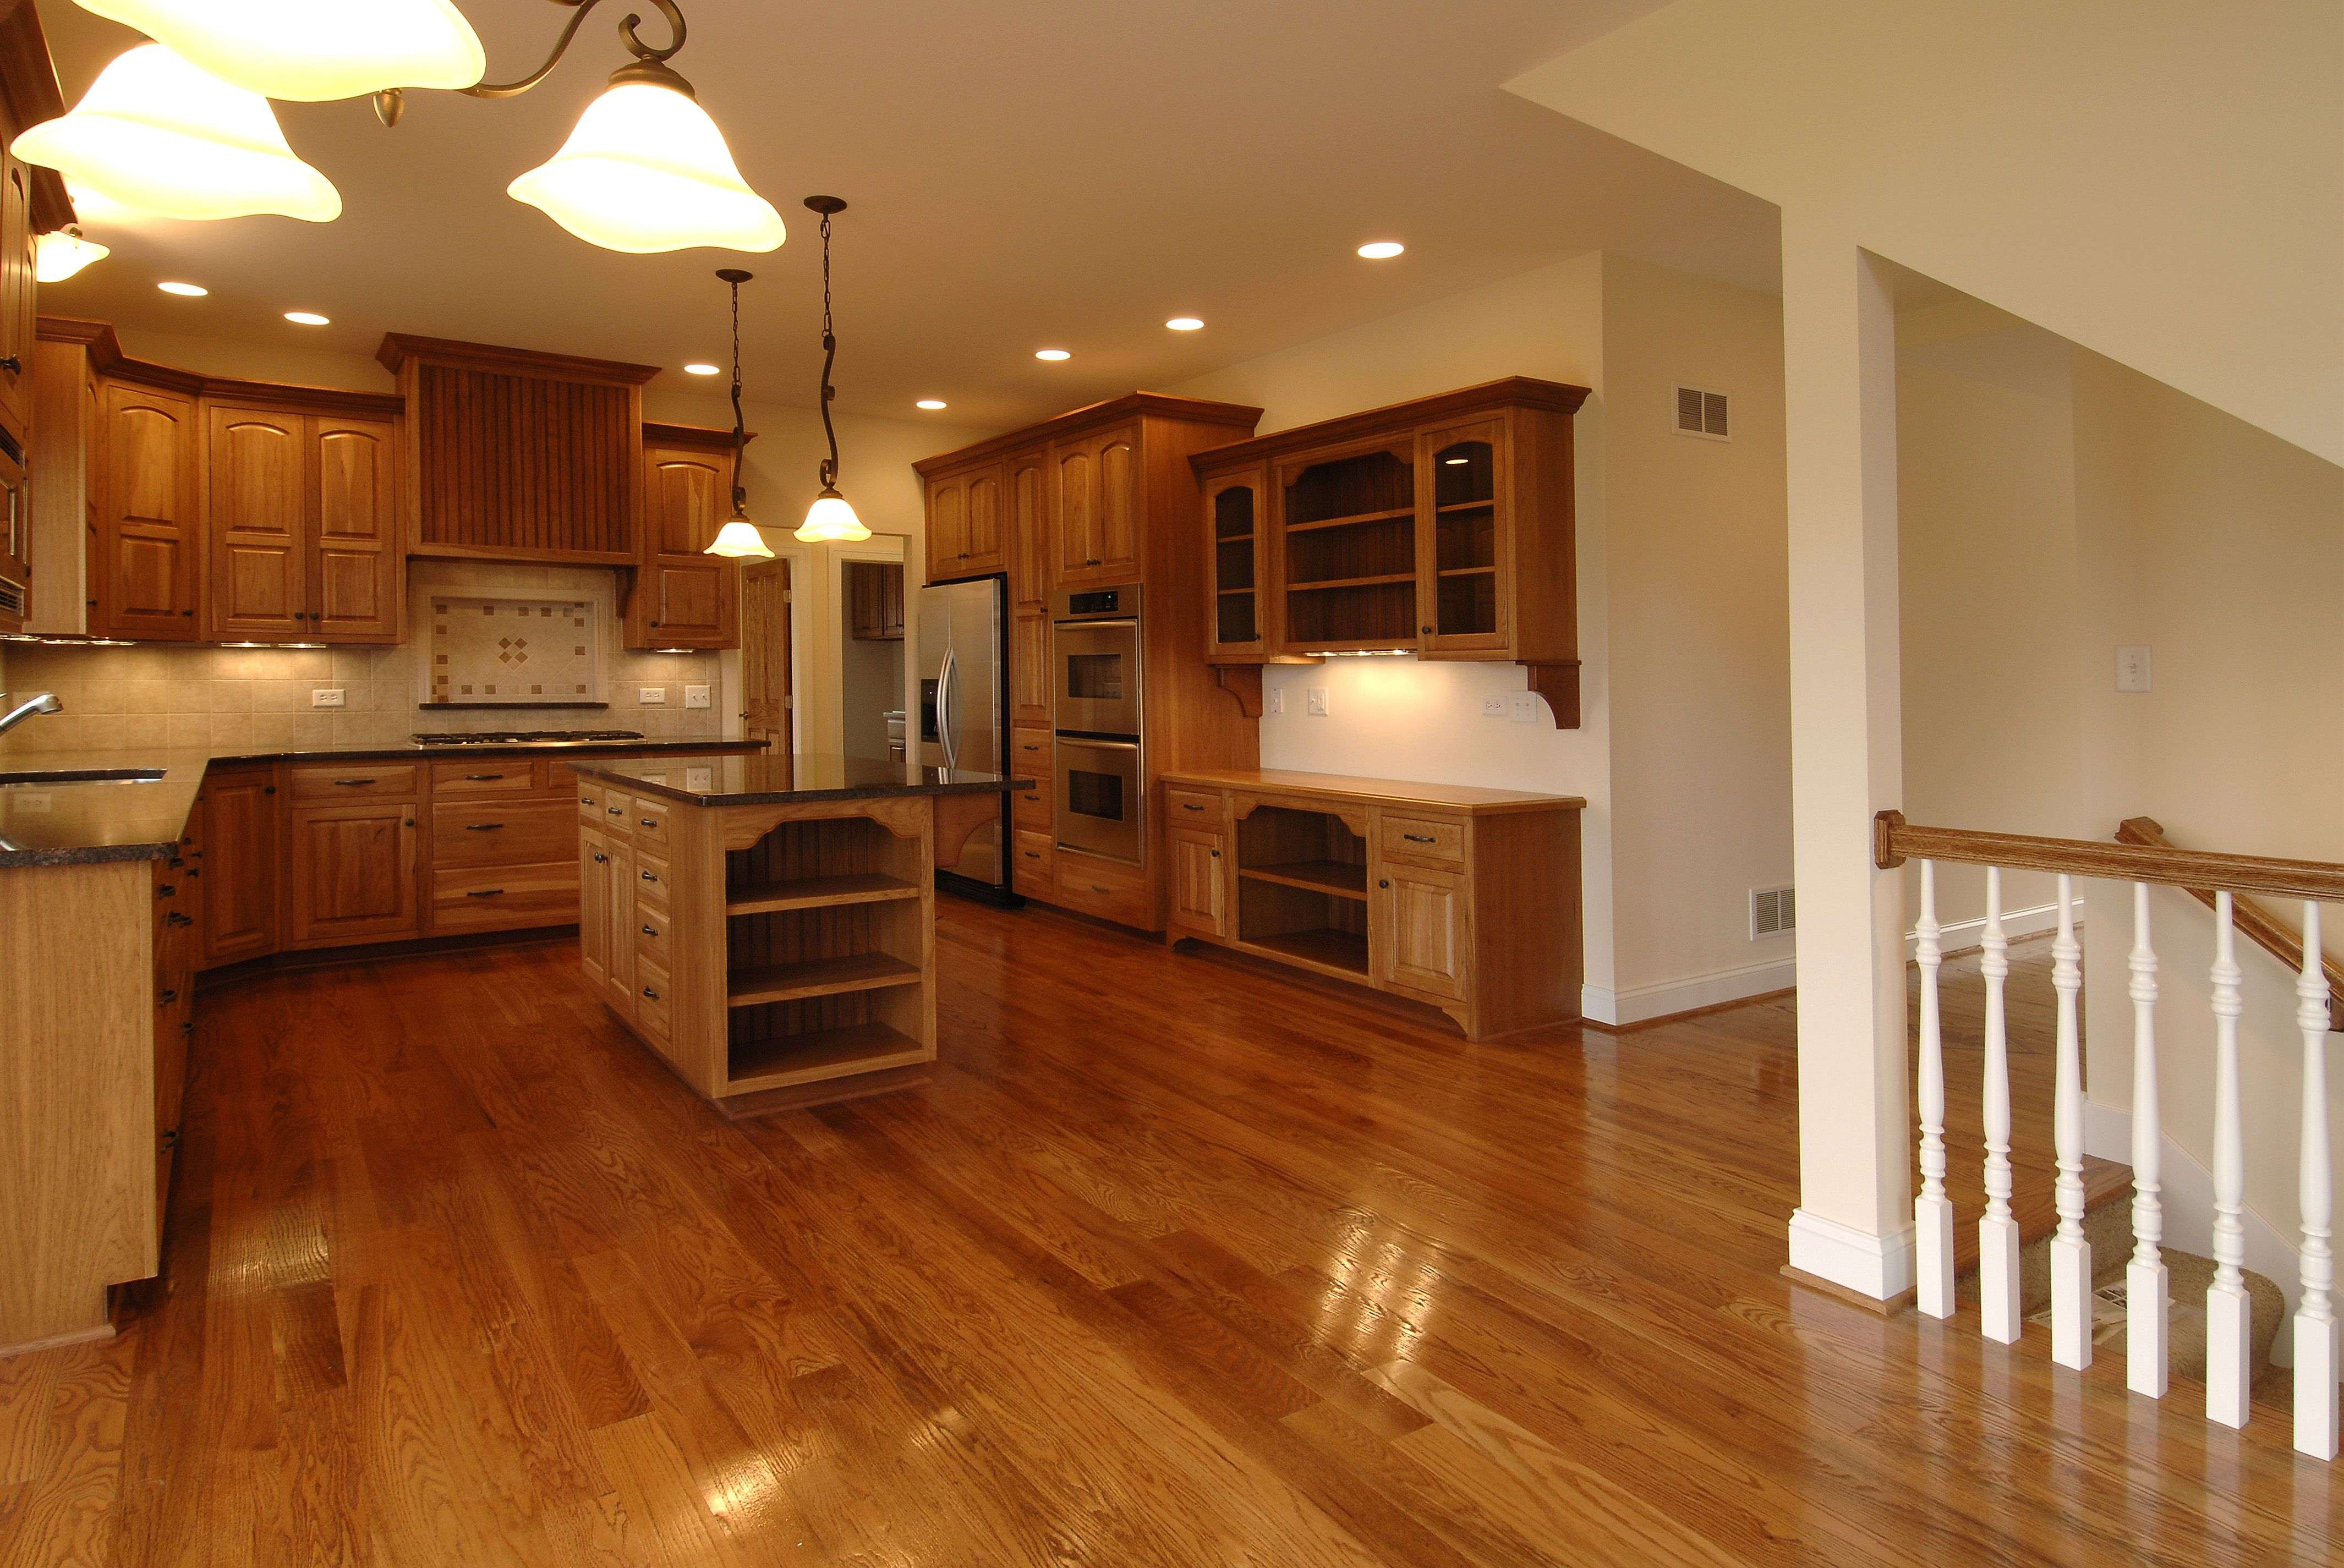 Hardwood Flooring Markham Of 21 Best Images Of Hardwood Flooring Images for Home Plan Cottage Intended for Hardwood Flooring Images Best Of Rave Reviews